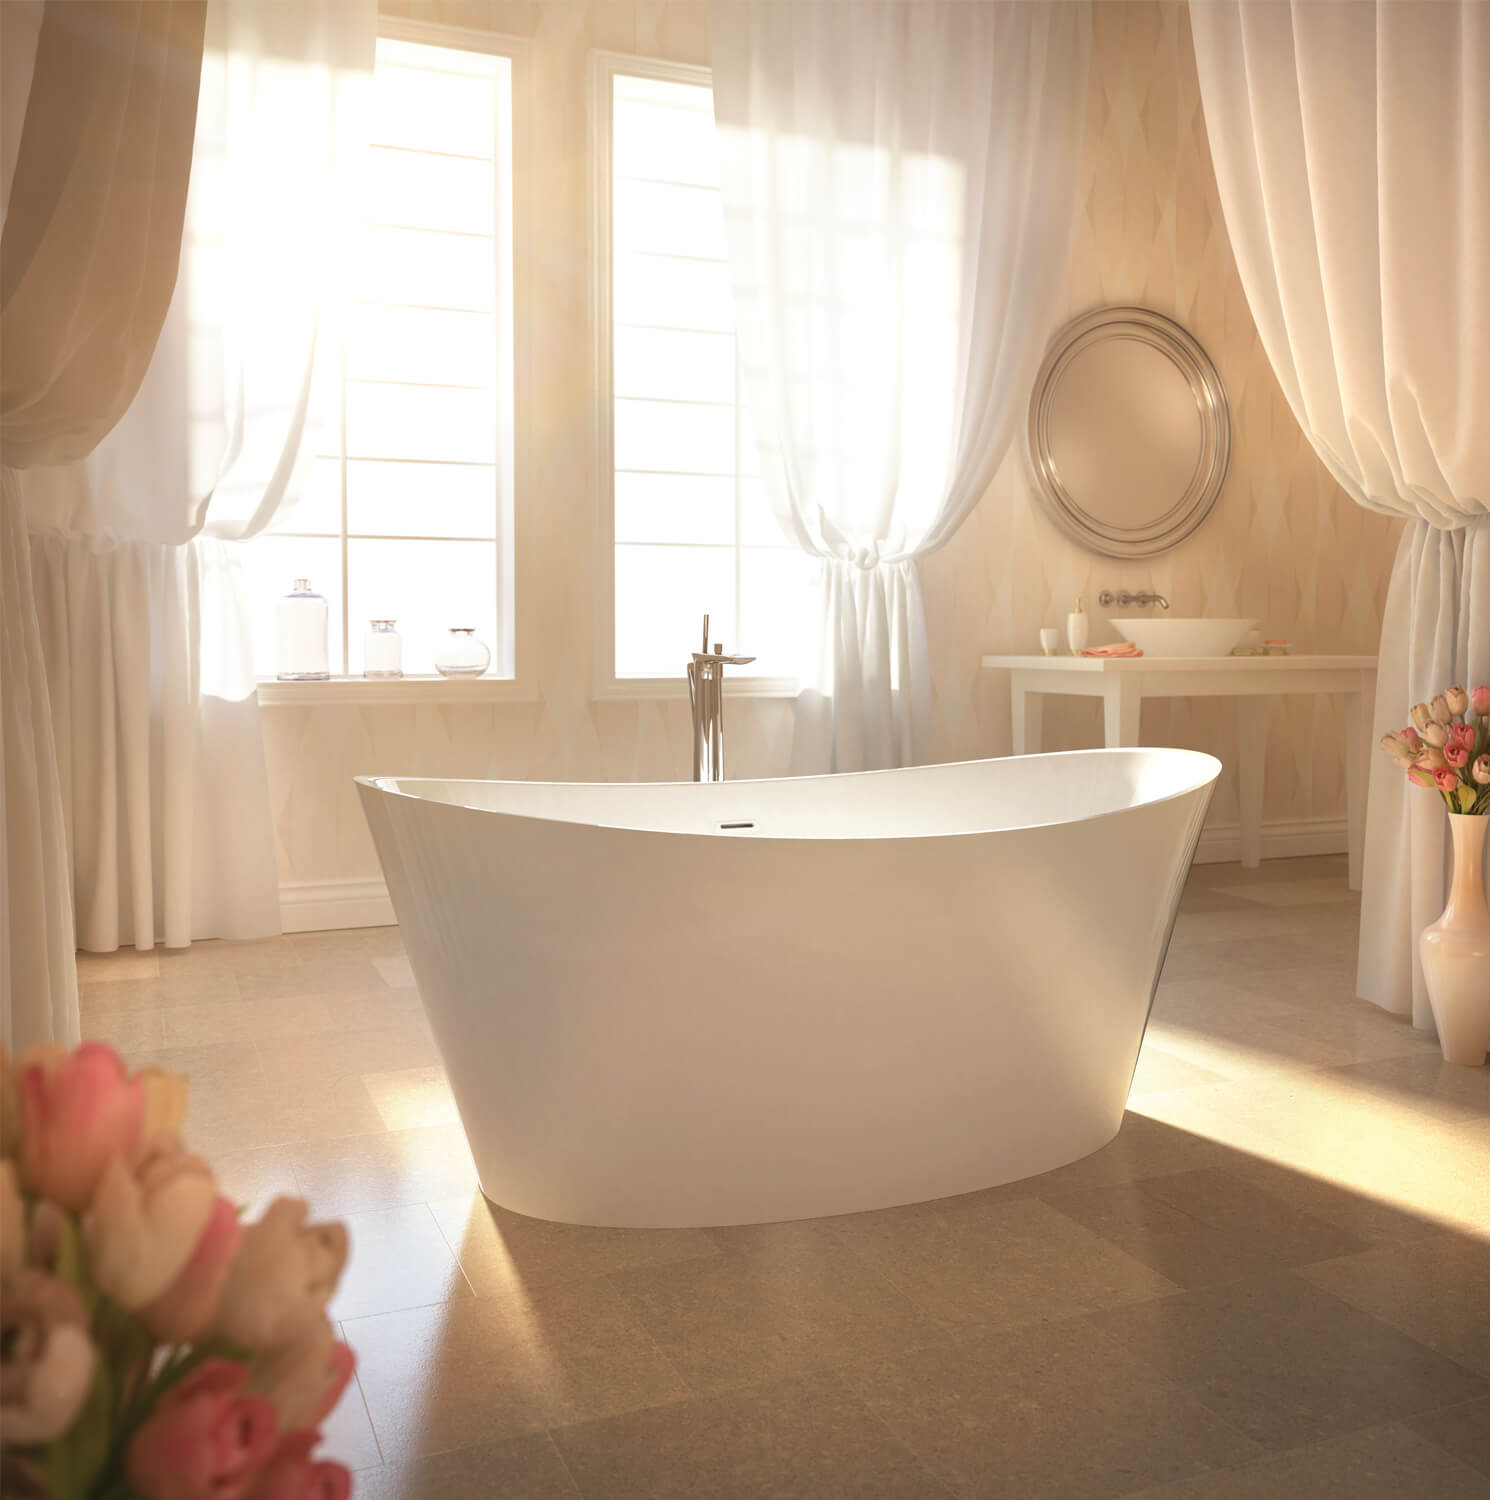 Bainultra Evanescence® 6636 Two Person Freestanding Air Jet Bathtub For  Your Modern Bathroom